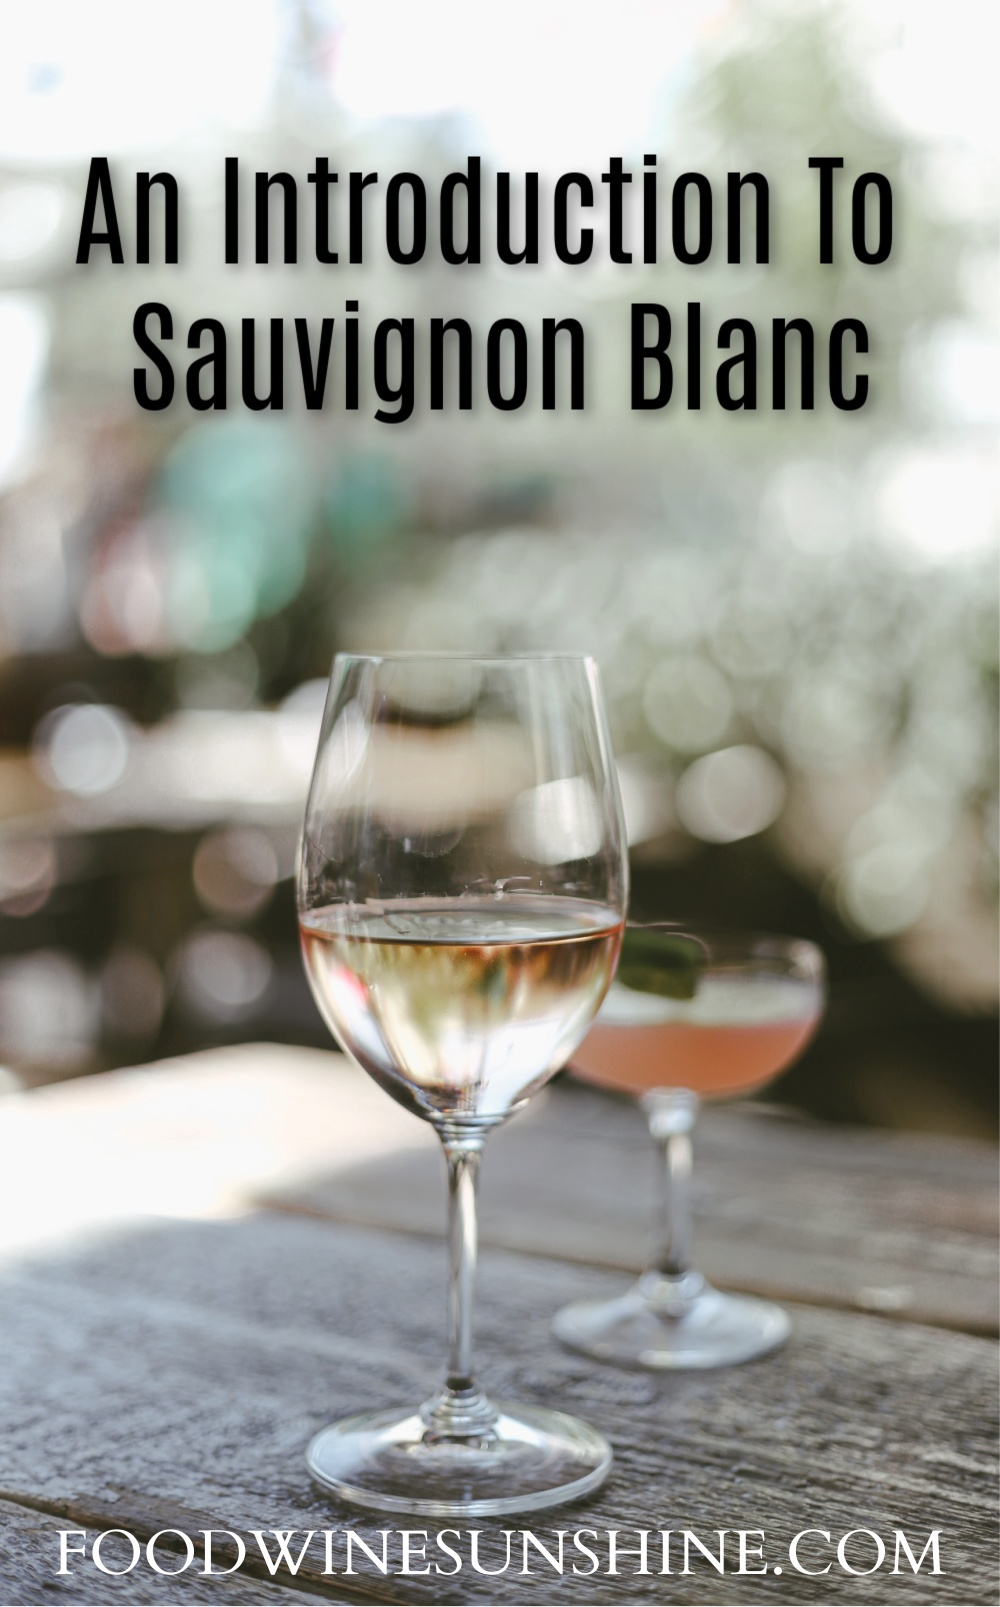 Introduction To Sauvignon Blanc